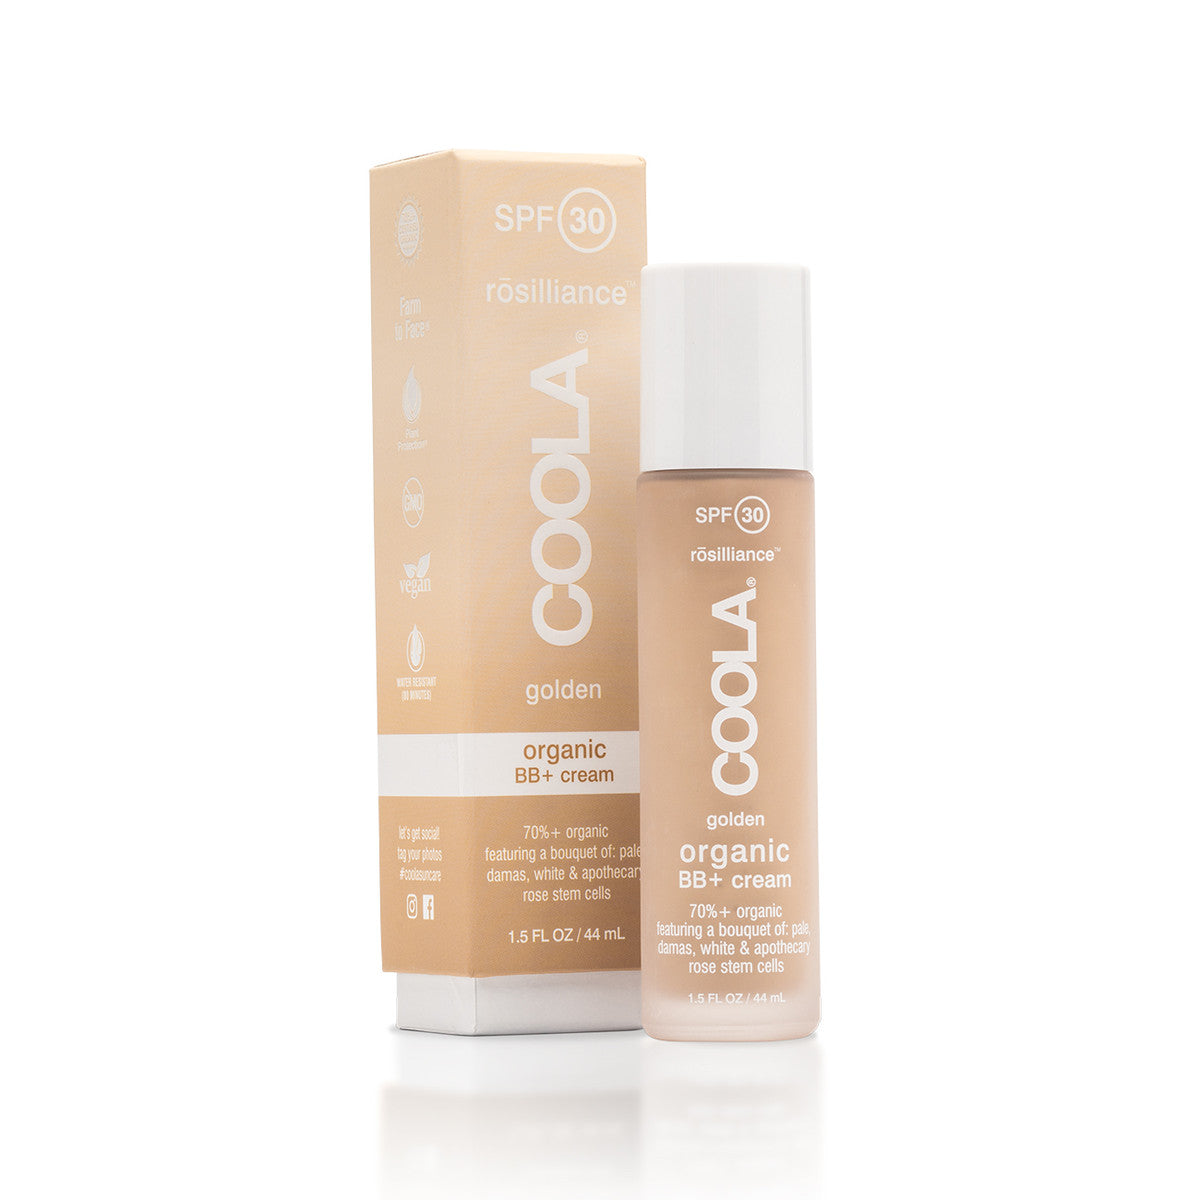 COOLA Rosilliance Organic BB+ Cream SPF 30 - Golden